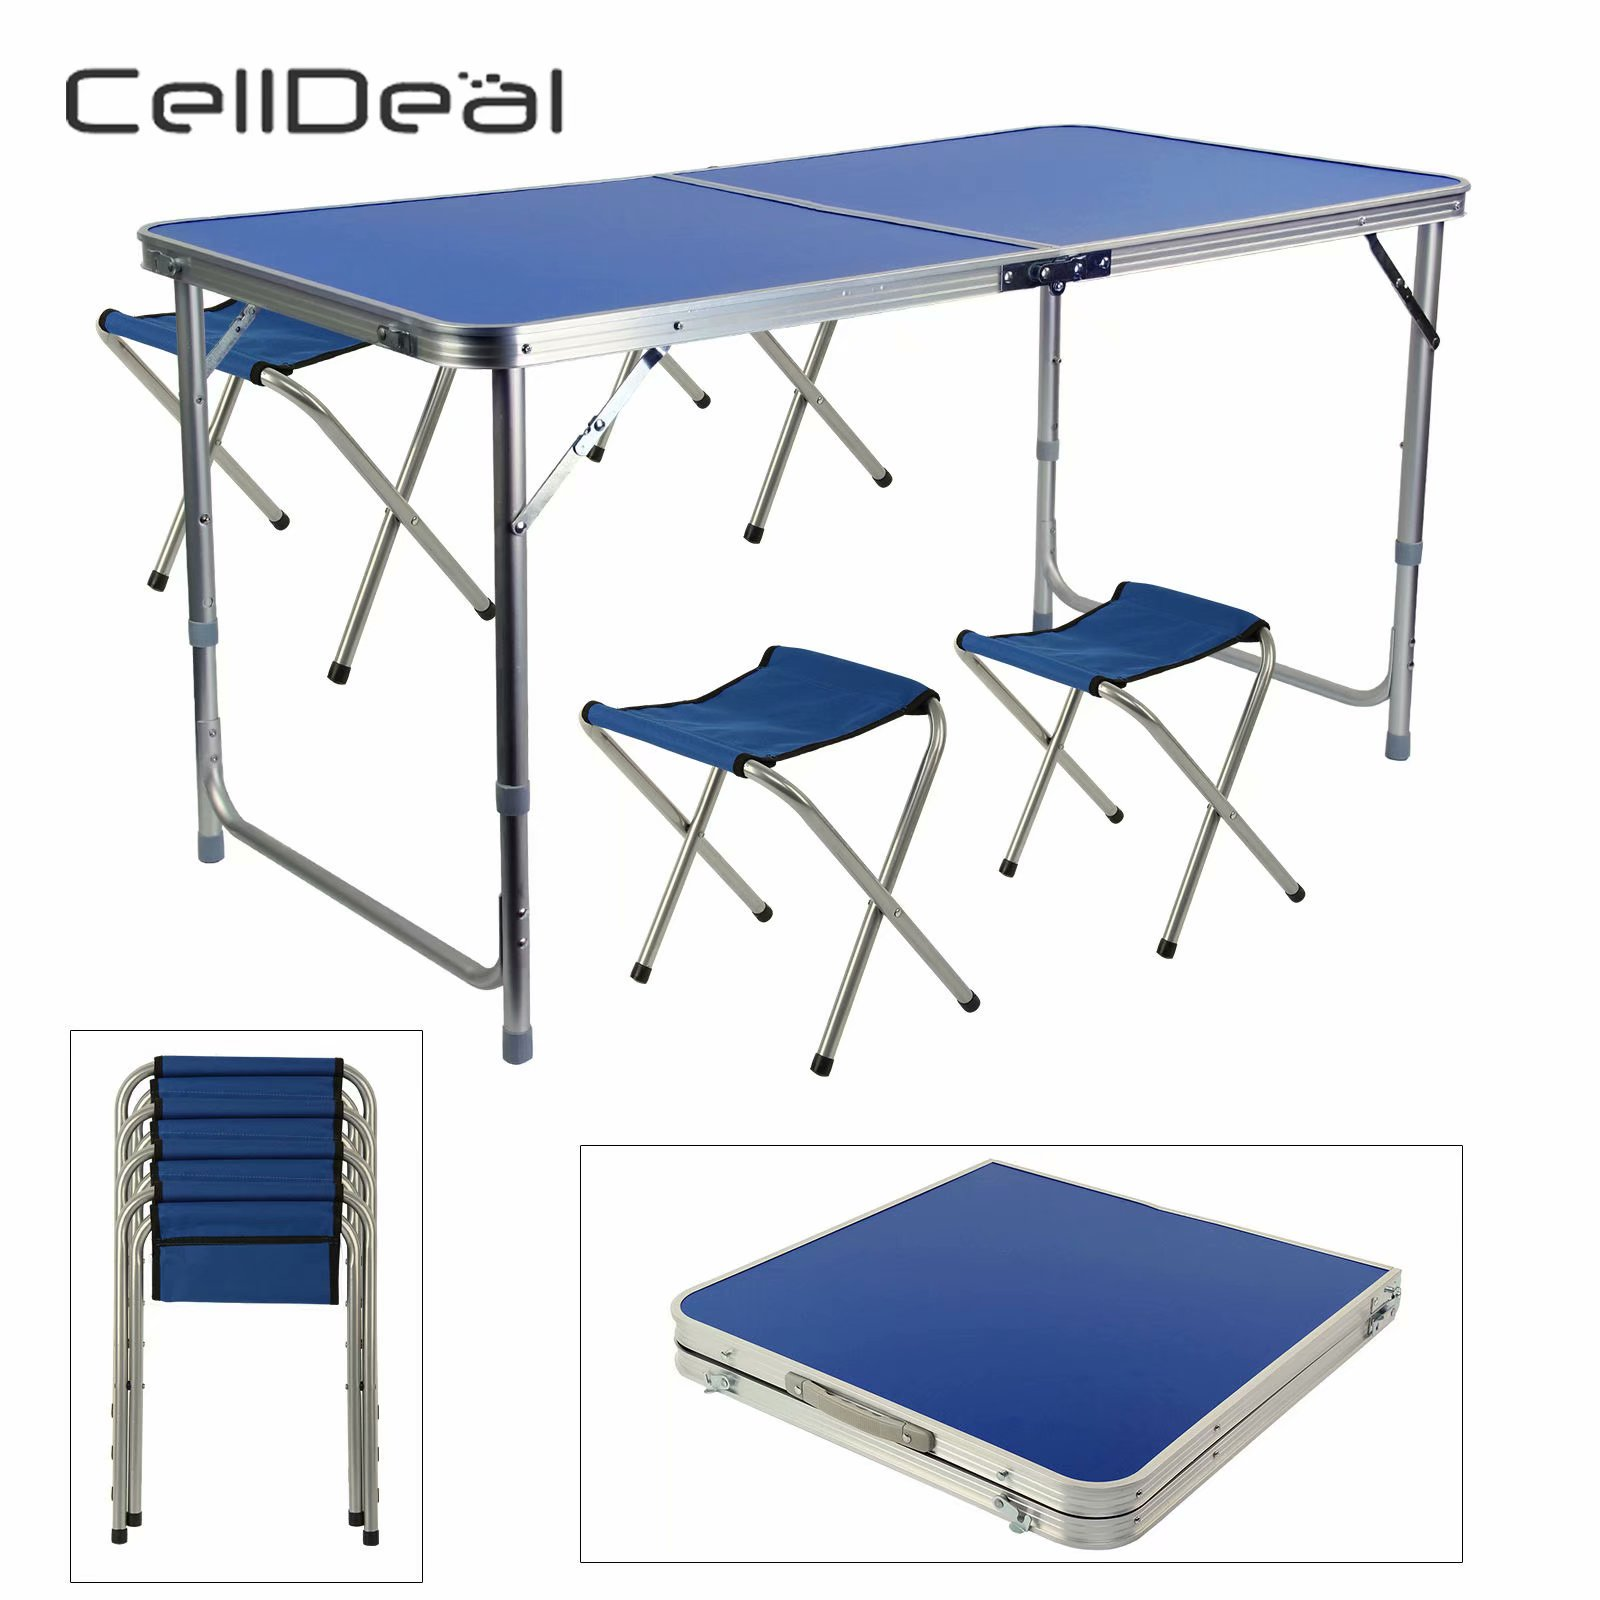 CellDeal Adjustable Portable Folding Table Laptop Desk With 4 Chairs Kit For Camping Party Picnic Garden Dining Outdoor